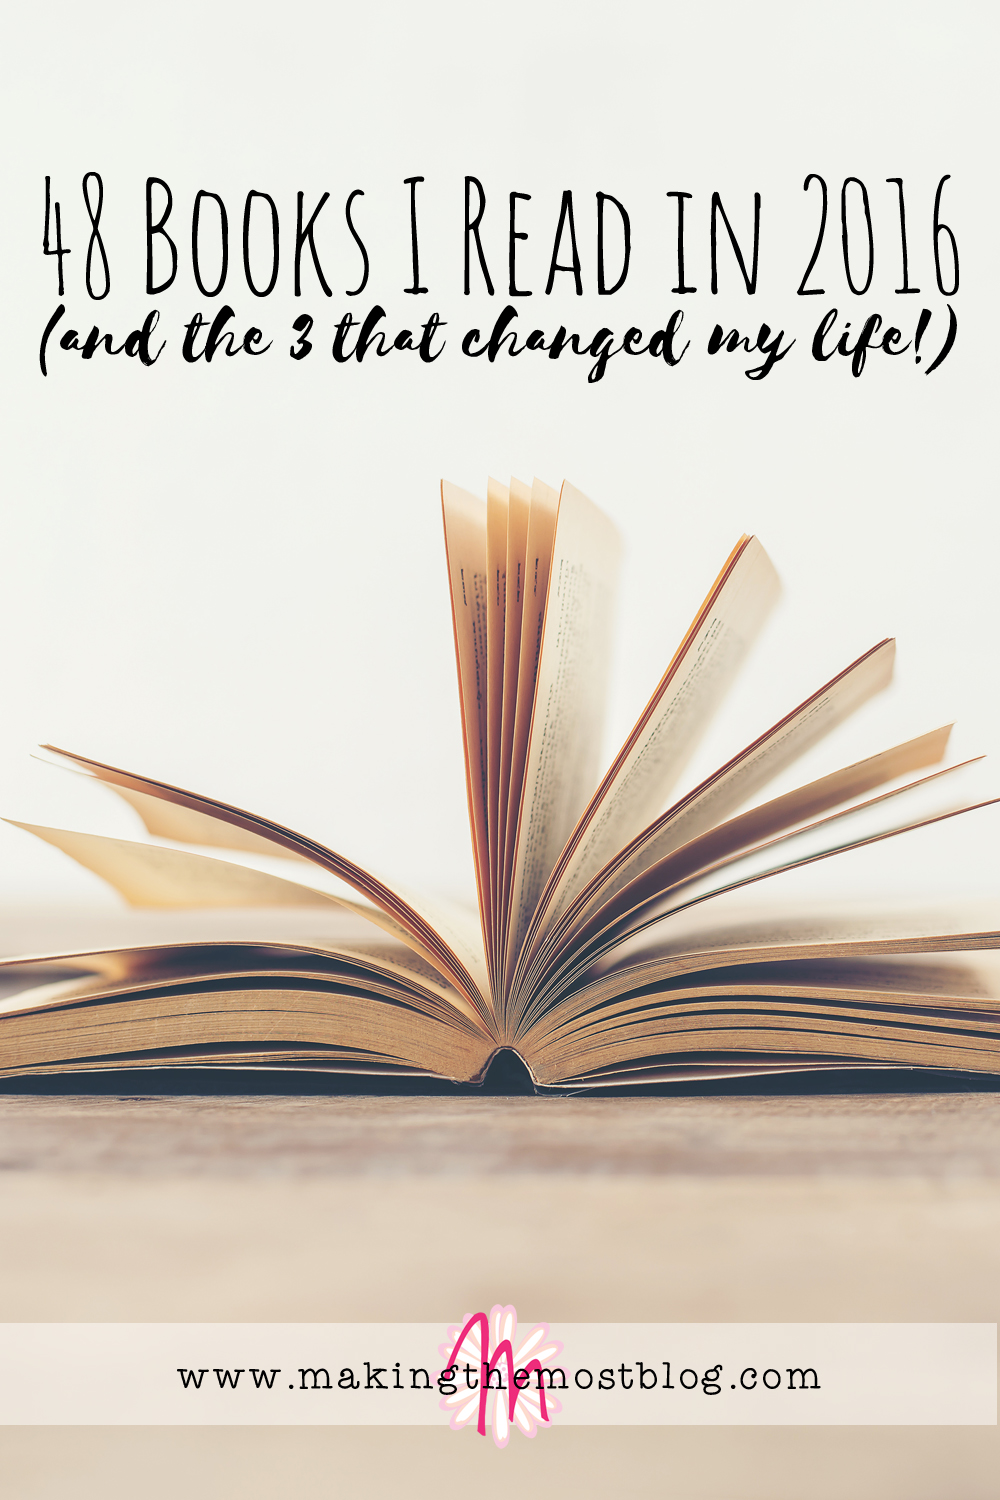 48 Books I Read In 2016 (And The 3 That Changed My Life!)